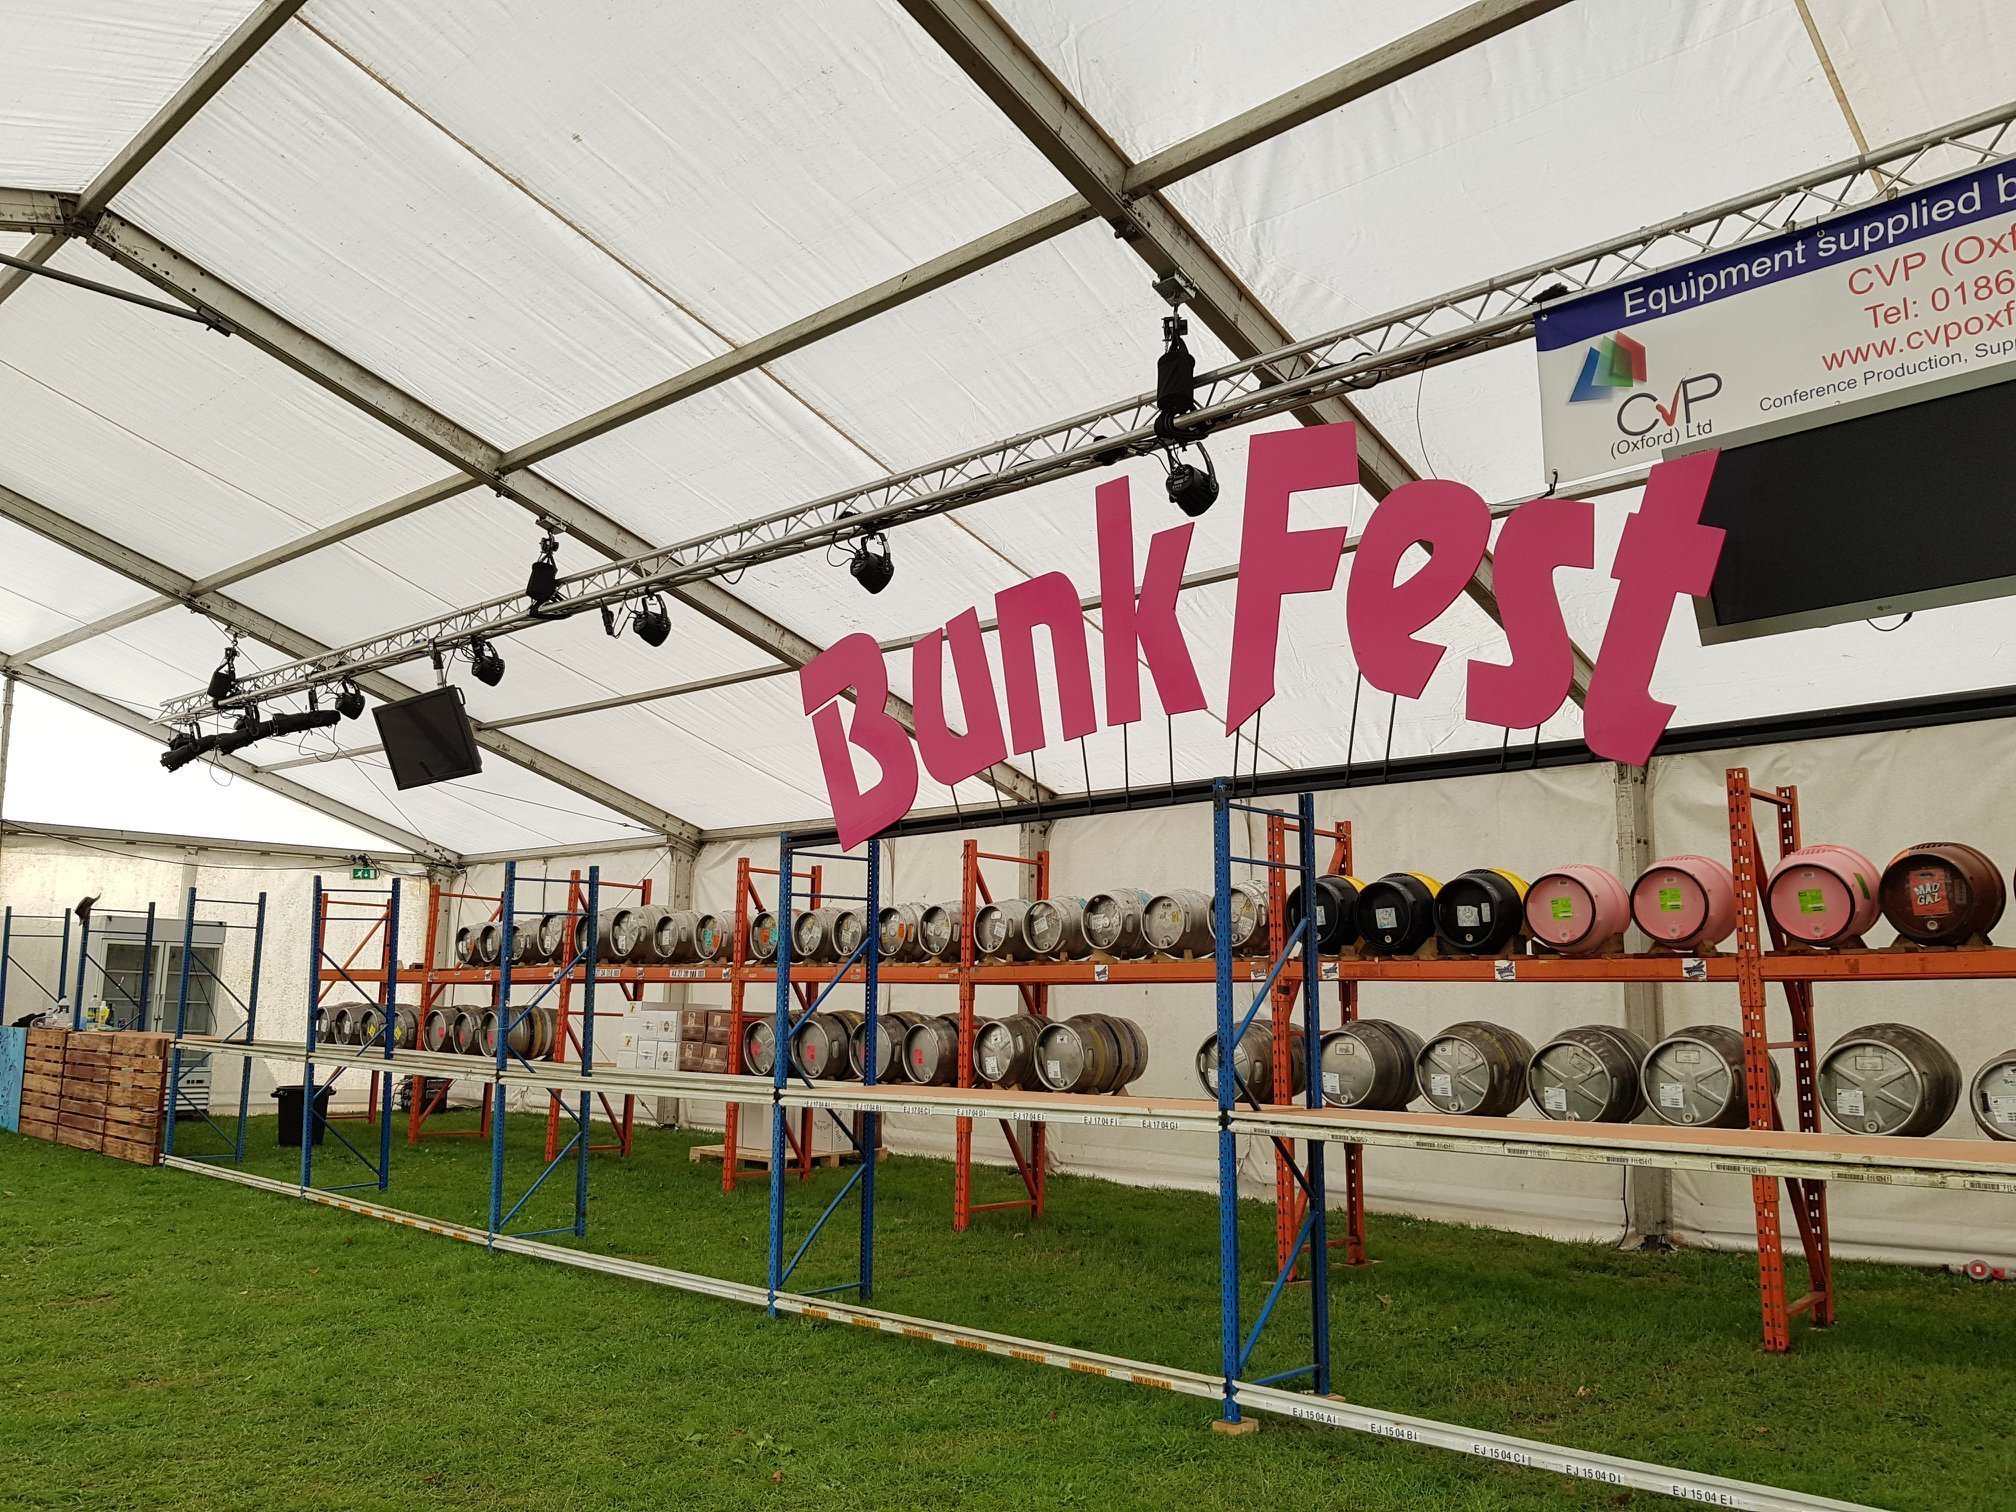 BunkFest, Wallingford, Oxfordshire - Gallery Image 05